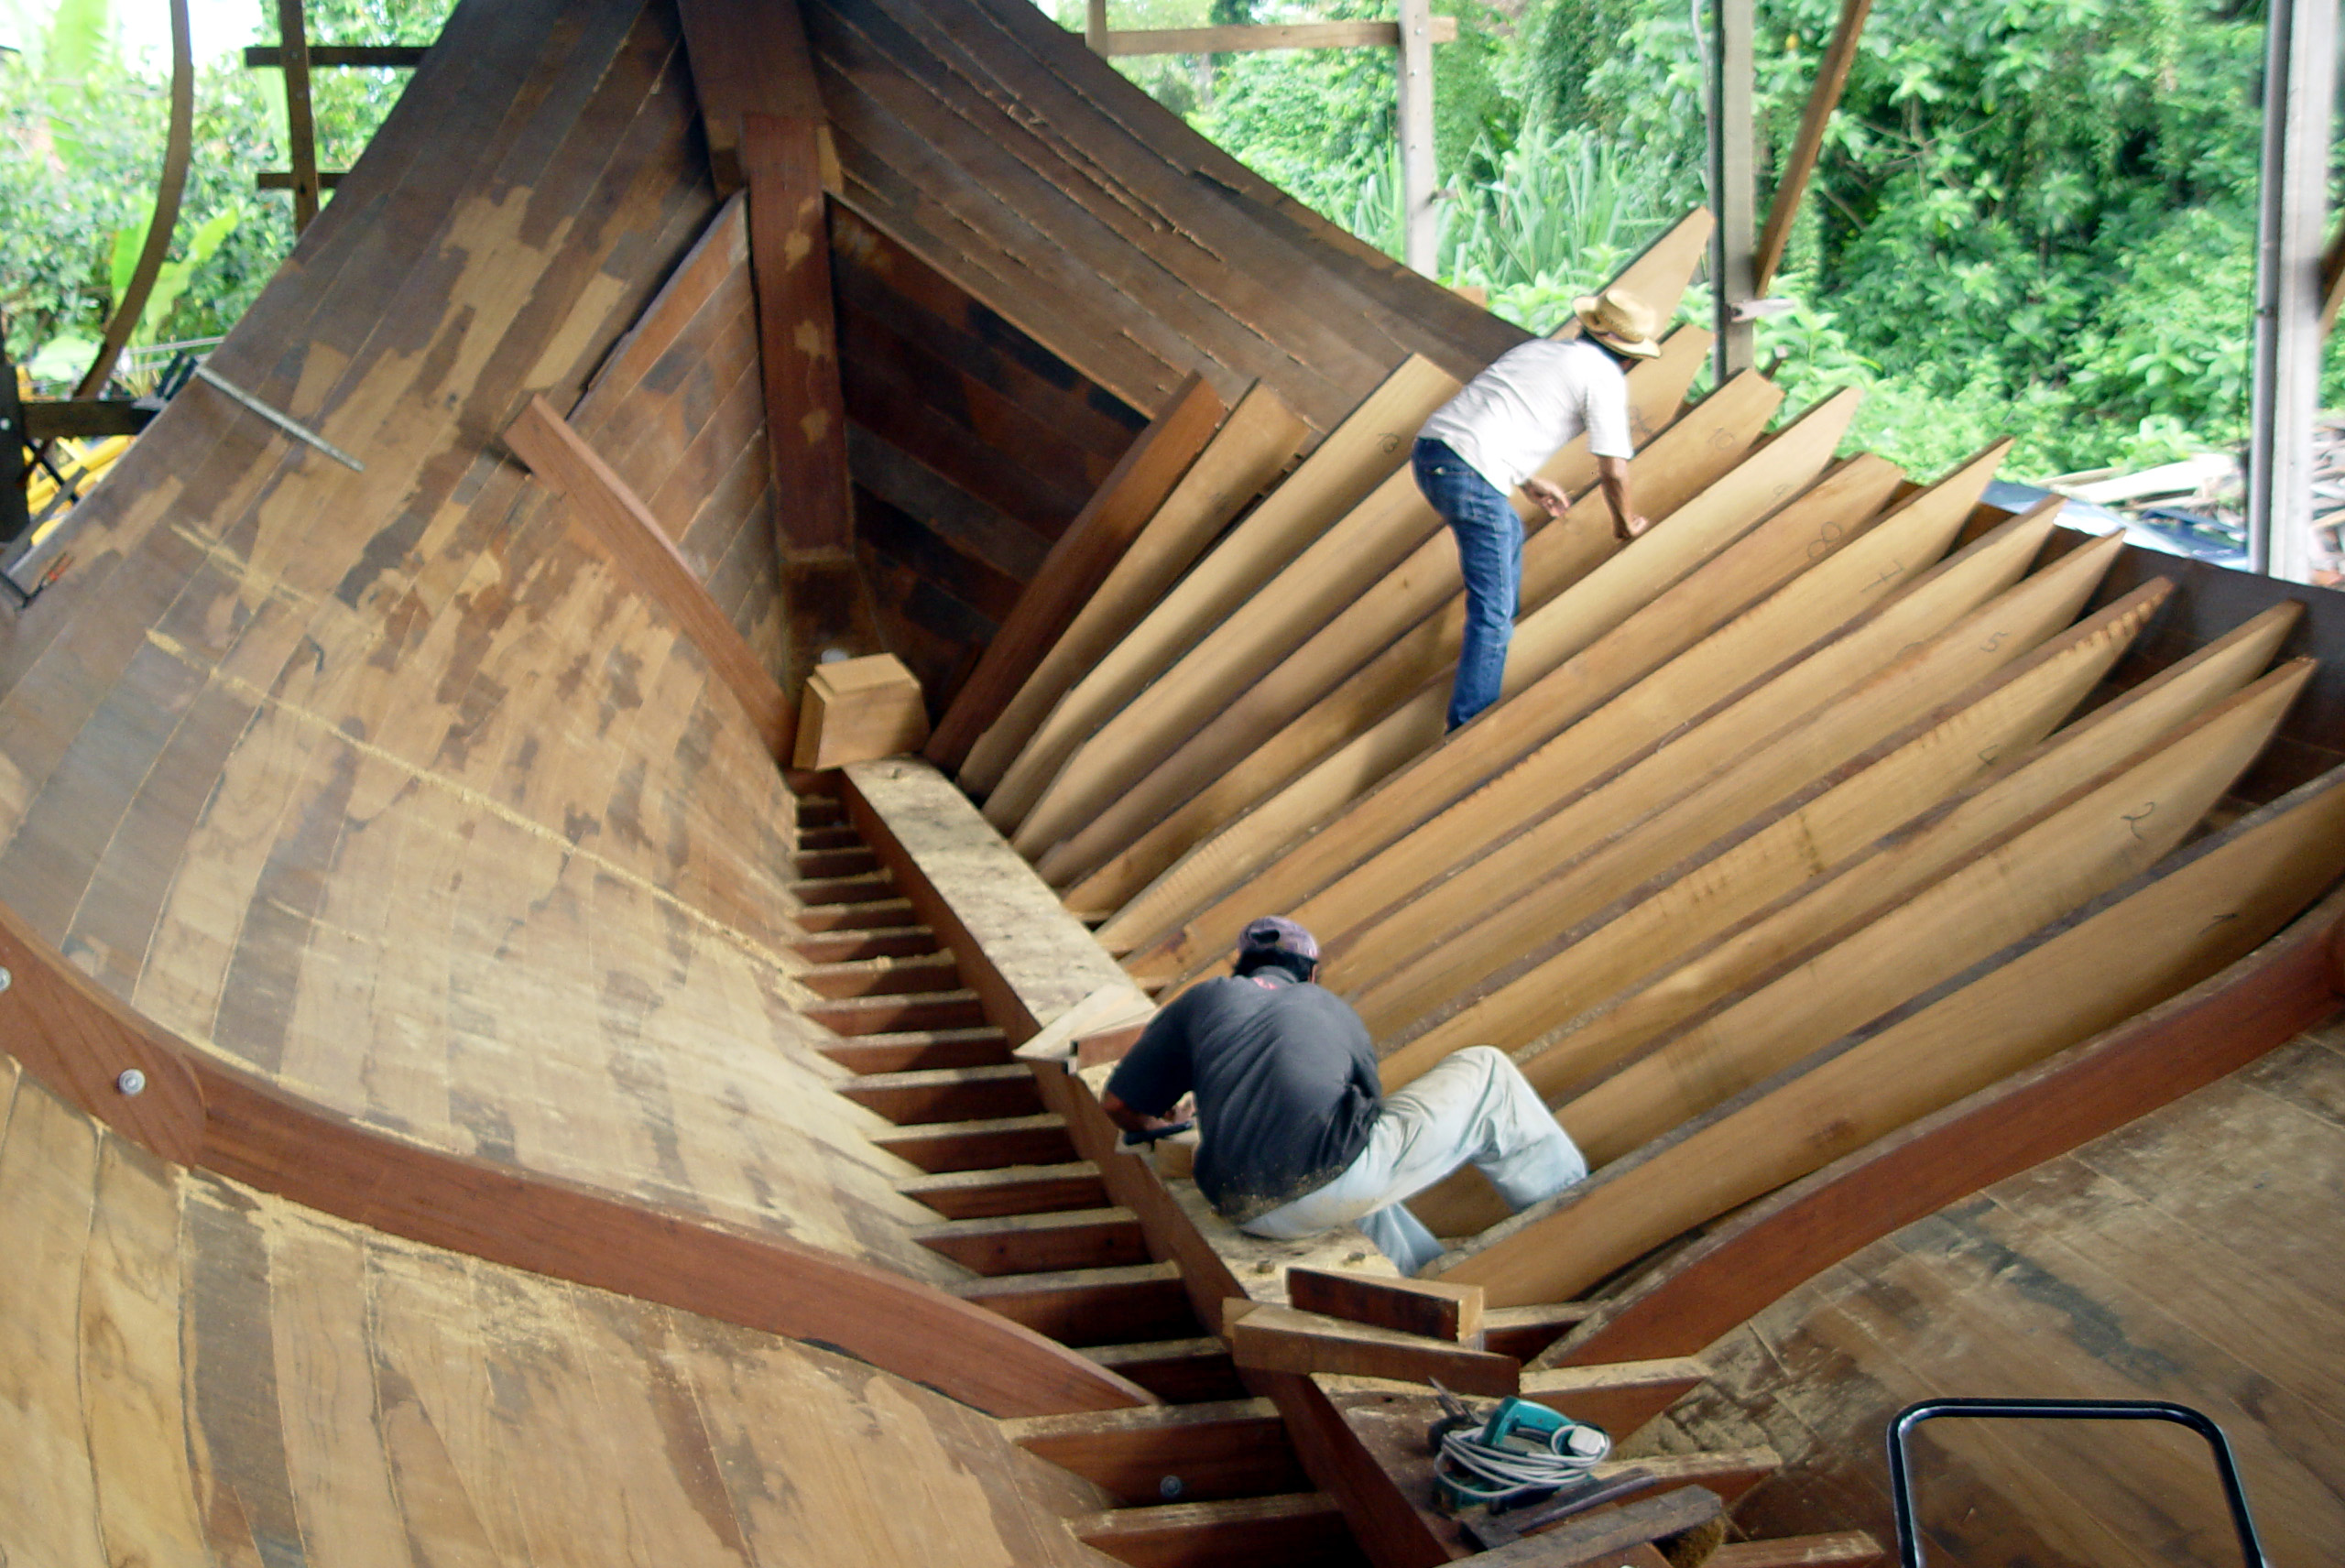 File:Traditional Malay boat building.jpg